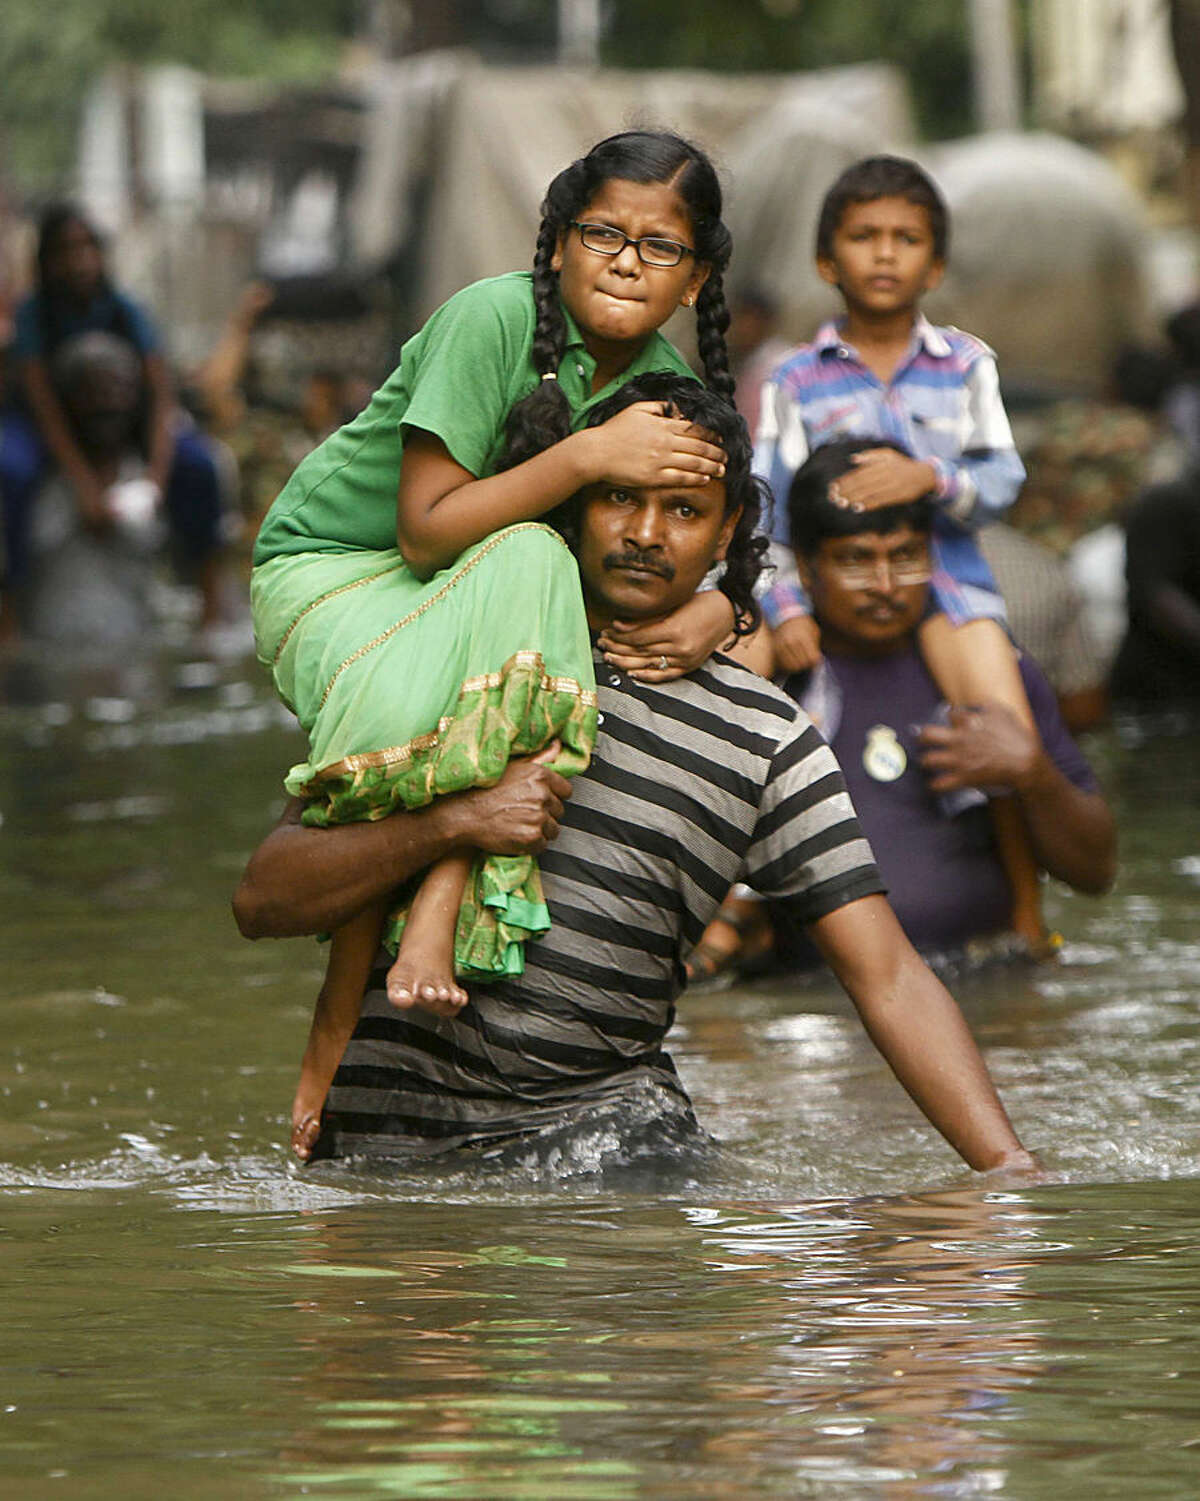 People carry children on their shoulders and wade through flood waters in Chennai, India, Thursday, Dec. 3, 2015. The heaviest rainfall in more than 100 years has devastated swathes of the southern Indian state of Tamil Nadu, with thousands forced to leave their submerged homes and schools, offices and a regional airport shut for a second day Thursday.( AP Photo)